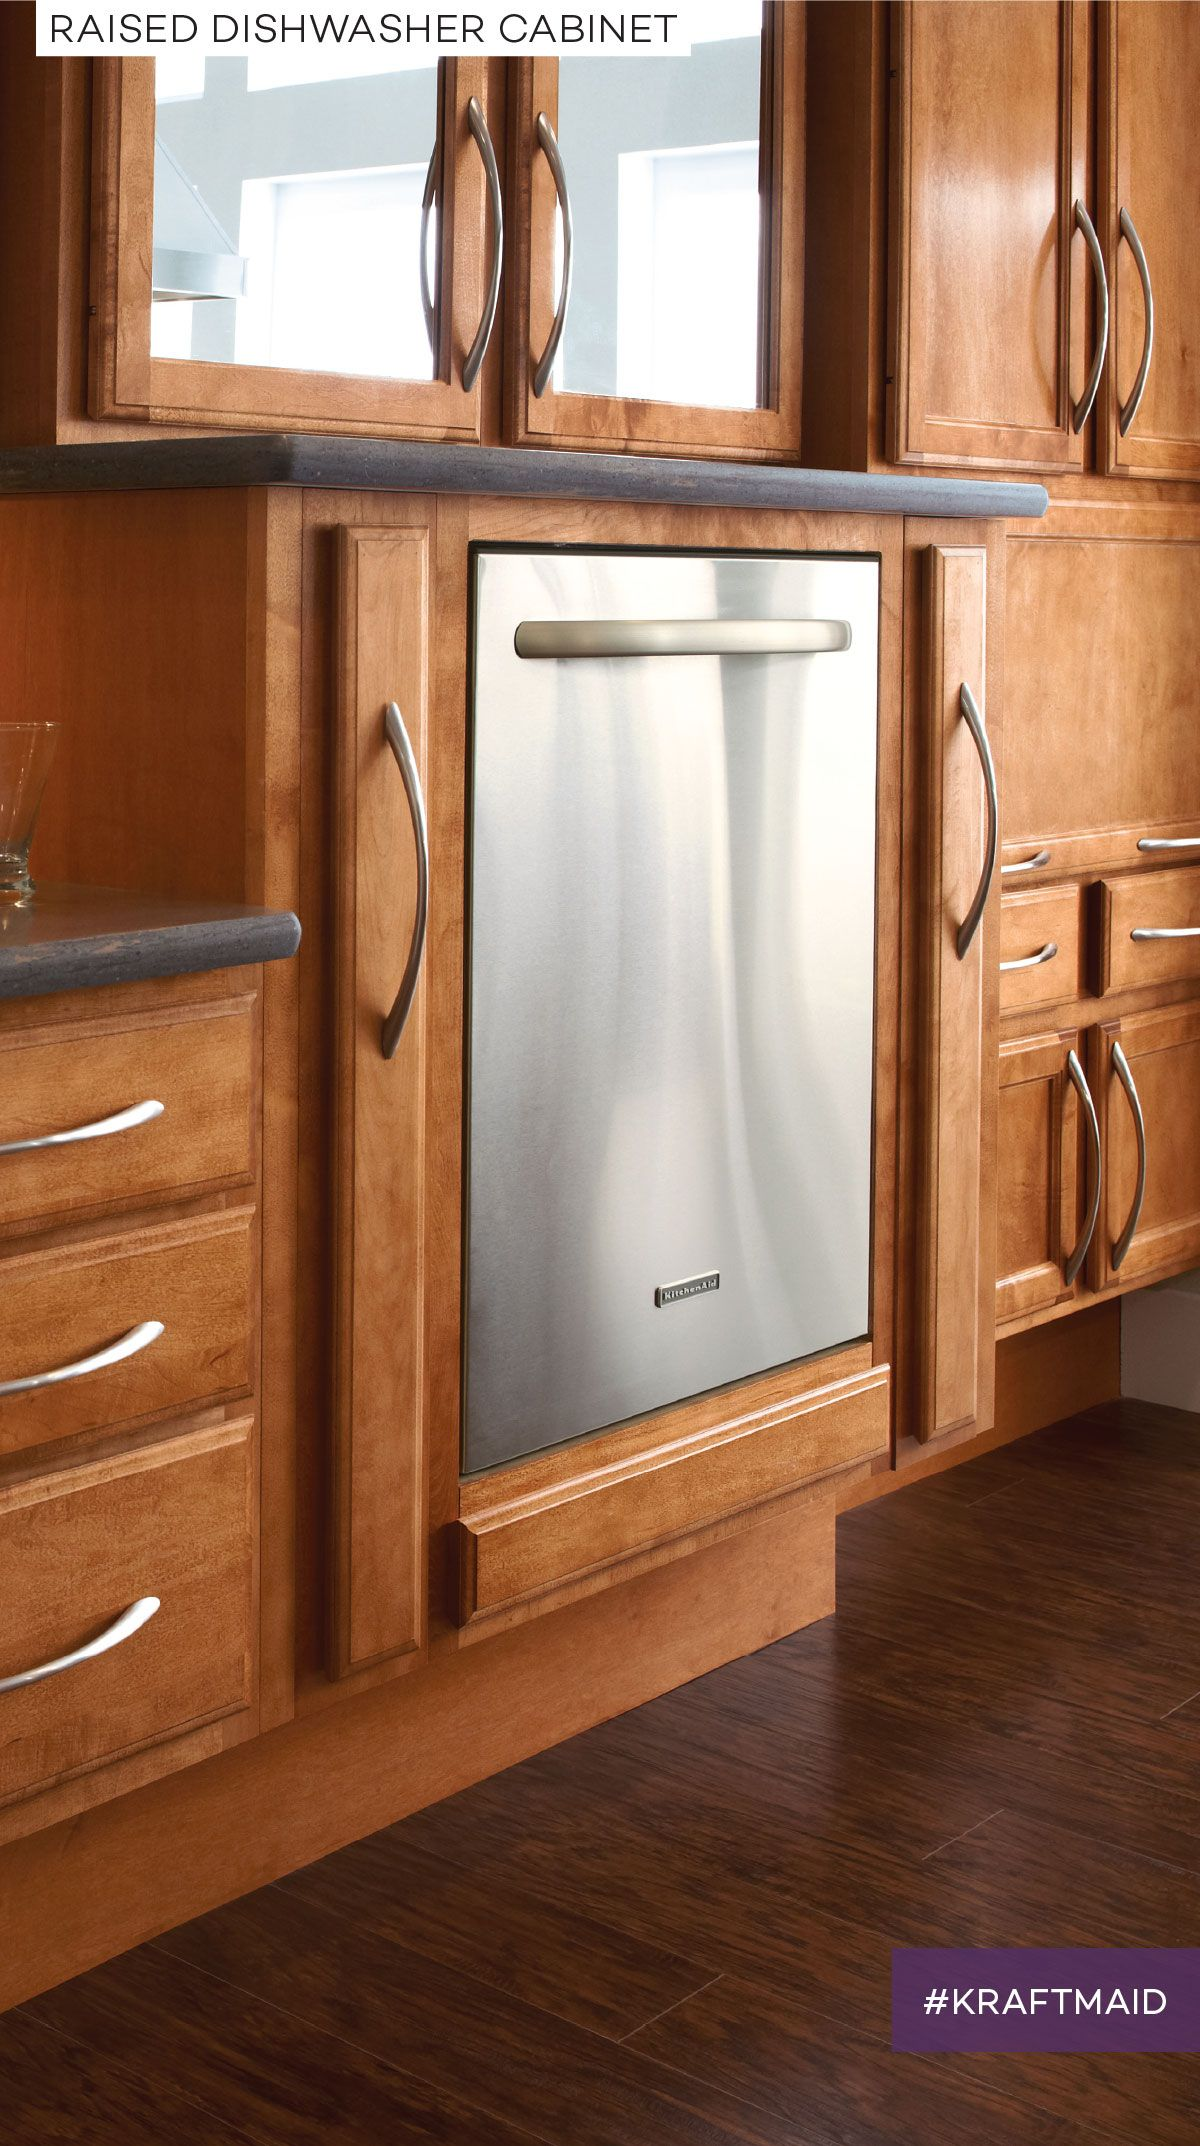 With KraftMaid cabinets you can have your appliances installed at